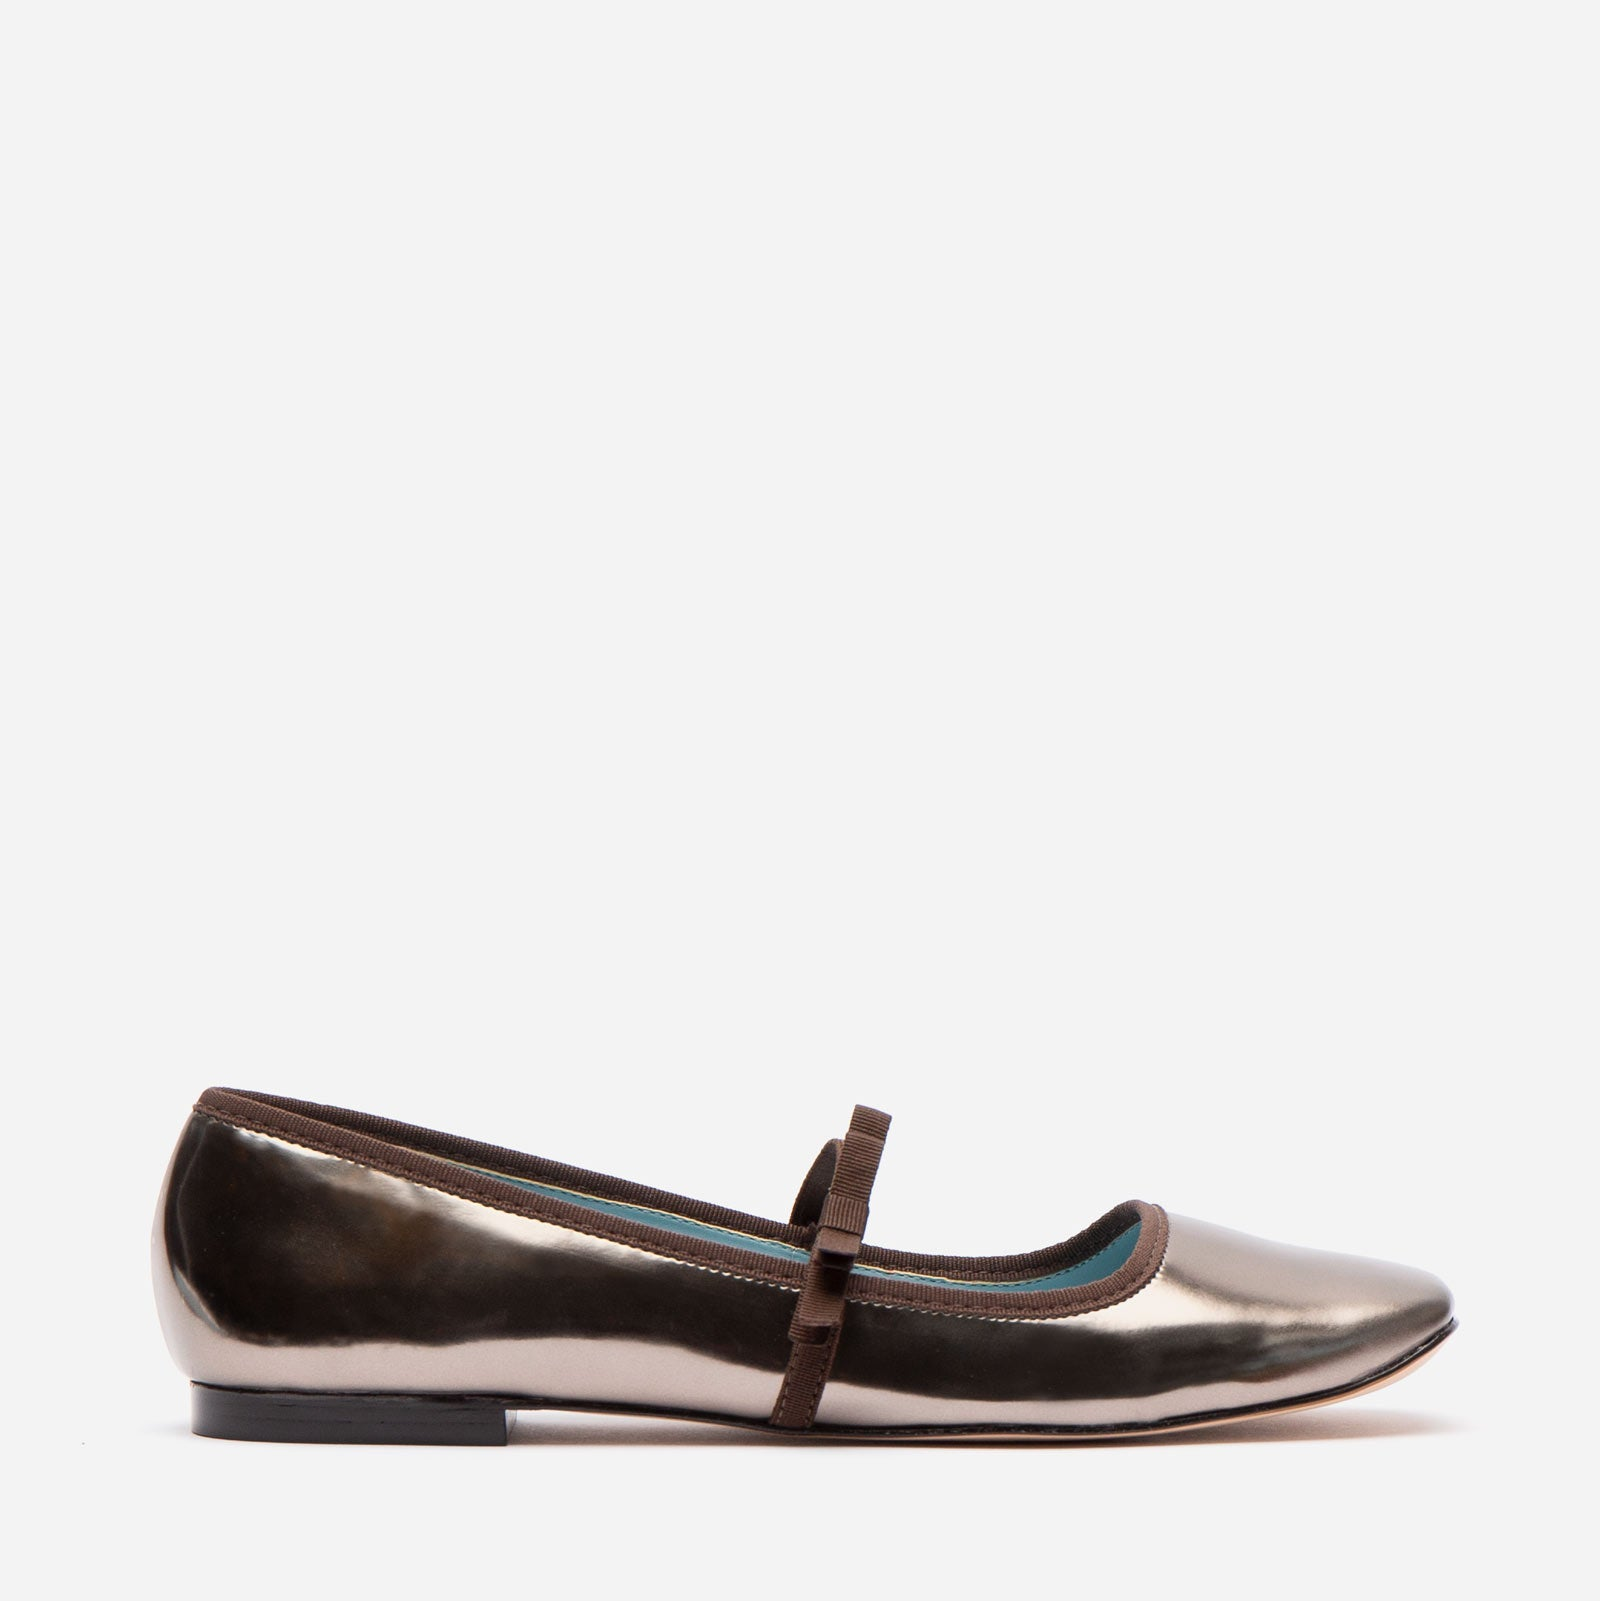 Jude Mary Jane Vegan Leather Flat Anthracite - Frances Valentine